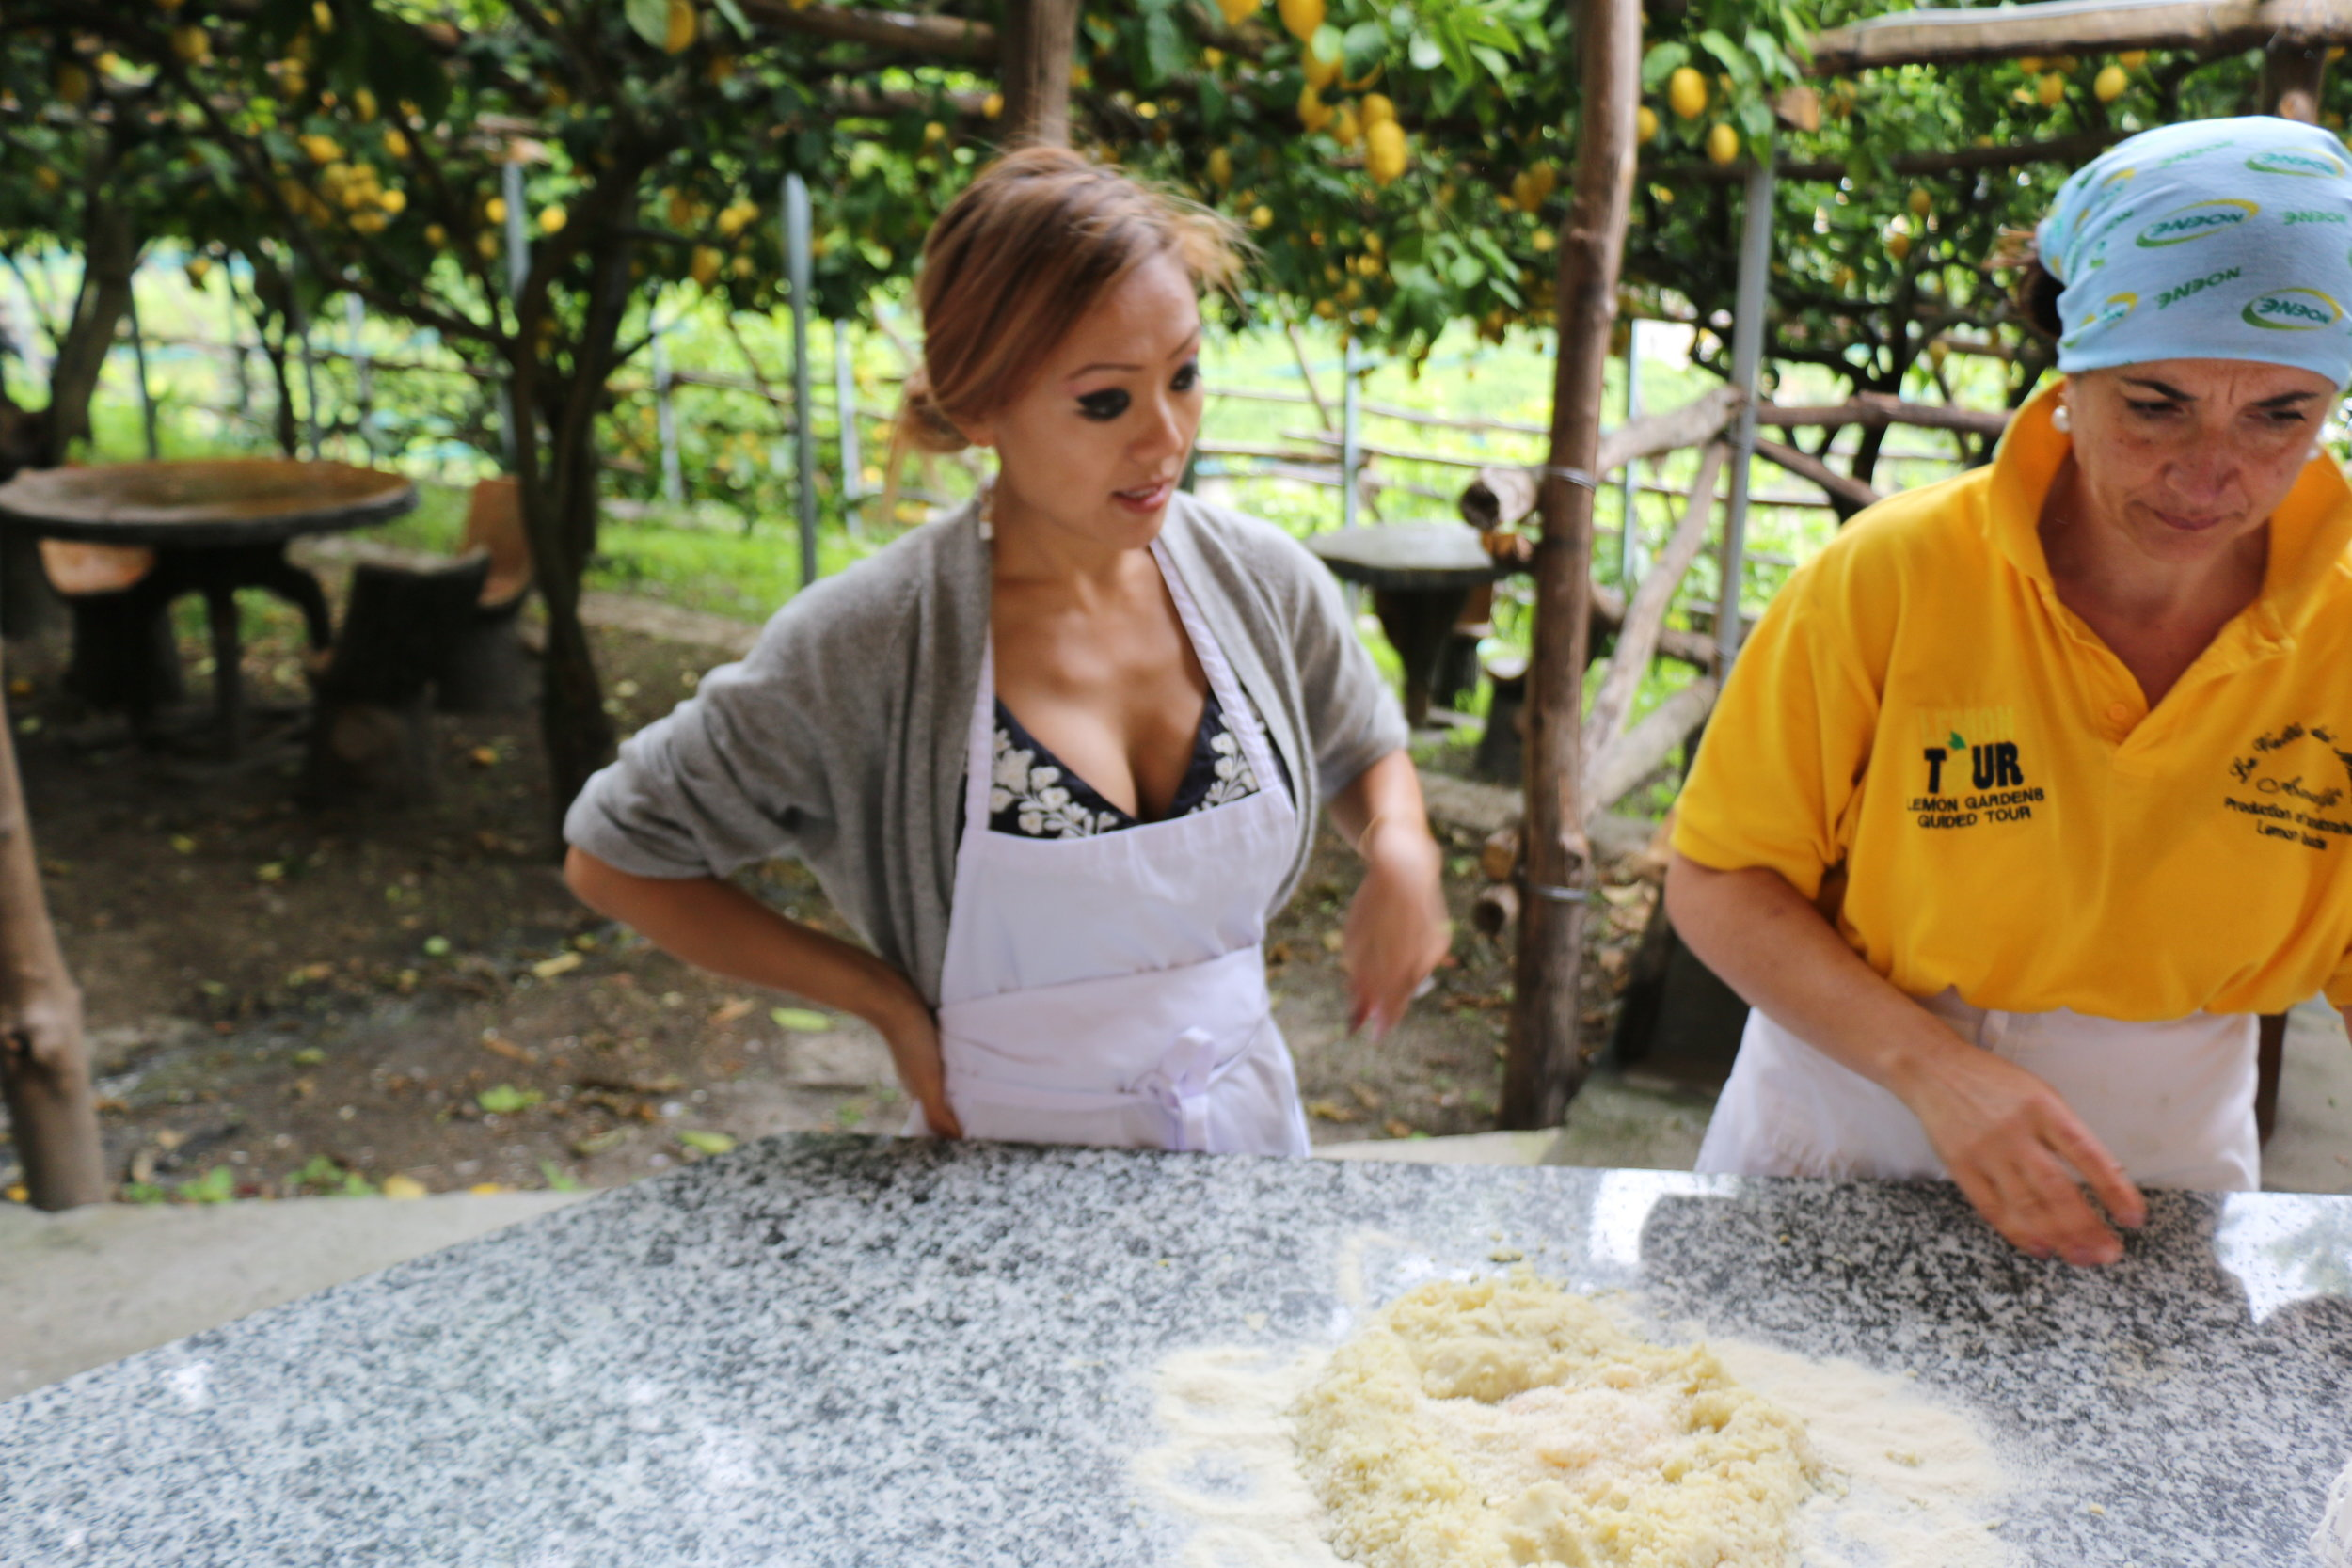 Setup for our 3rd dish: Fresh Gnocchi with of course lemon zest and juice